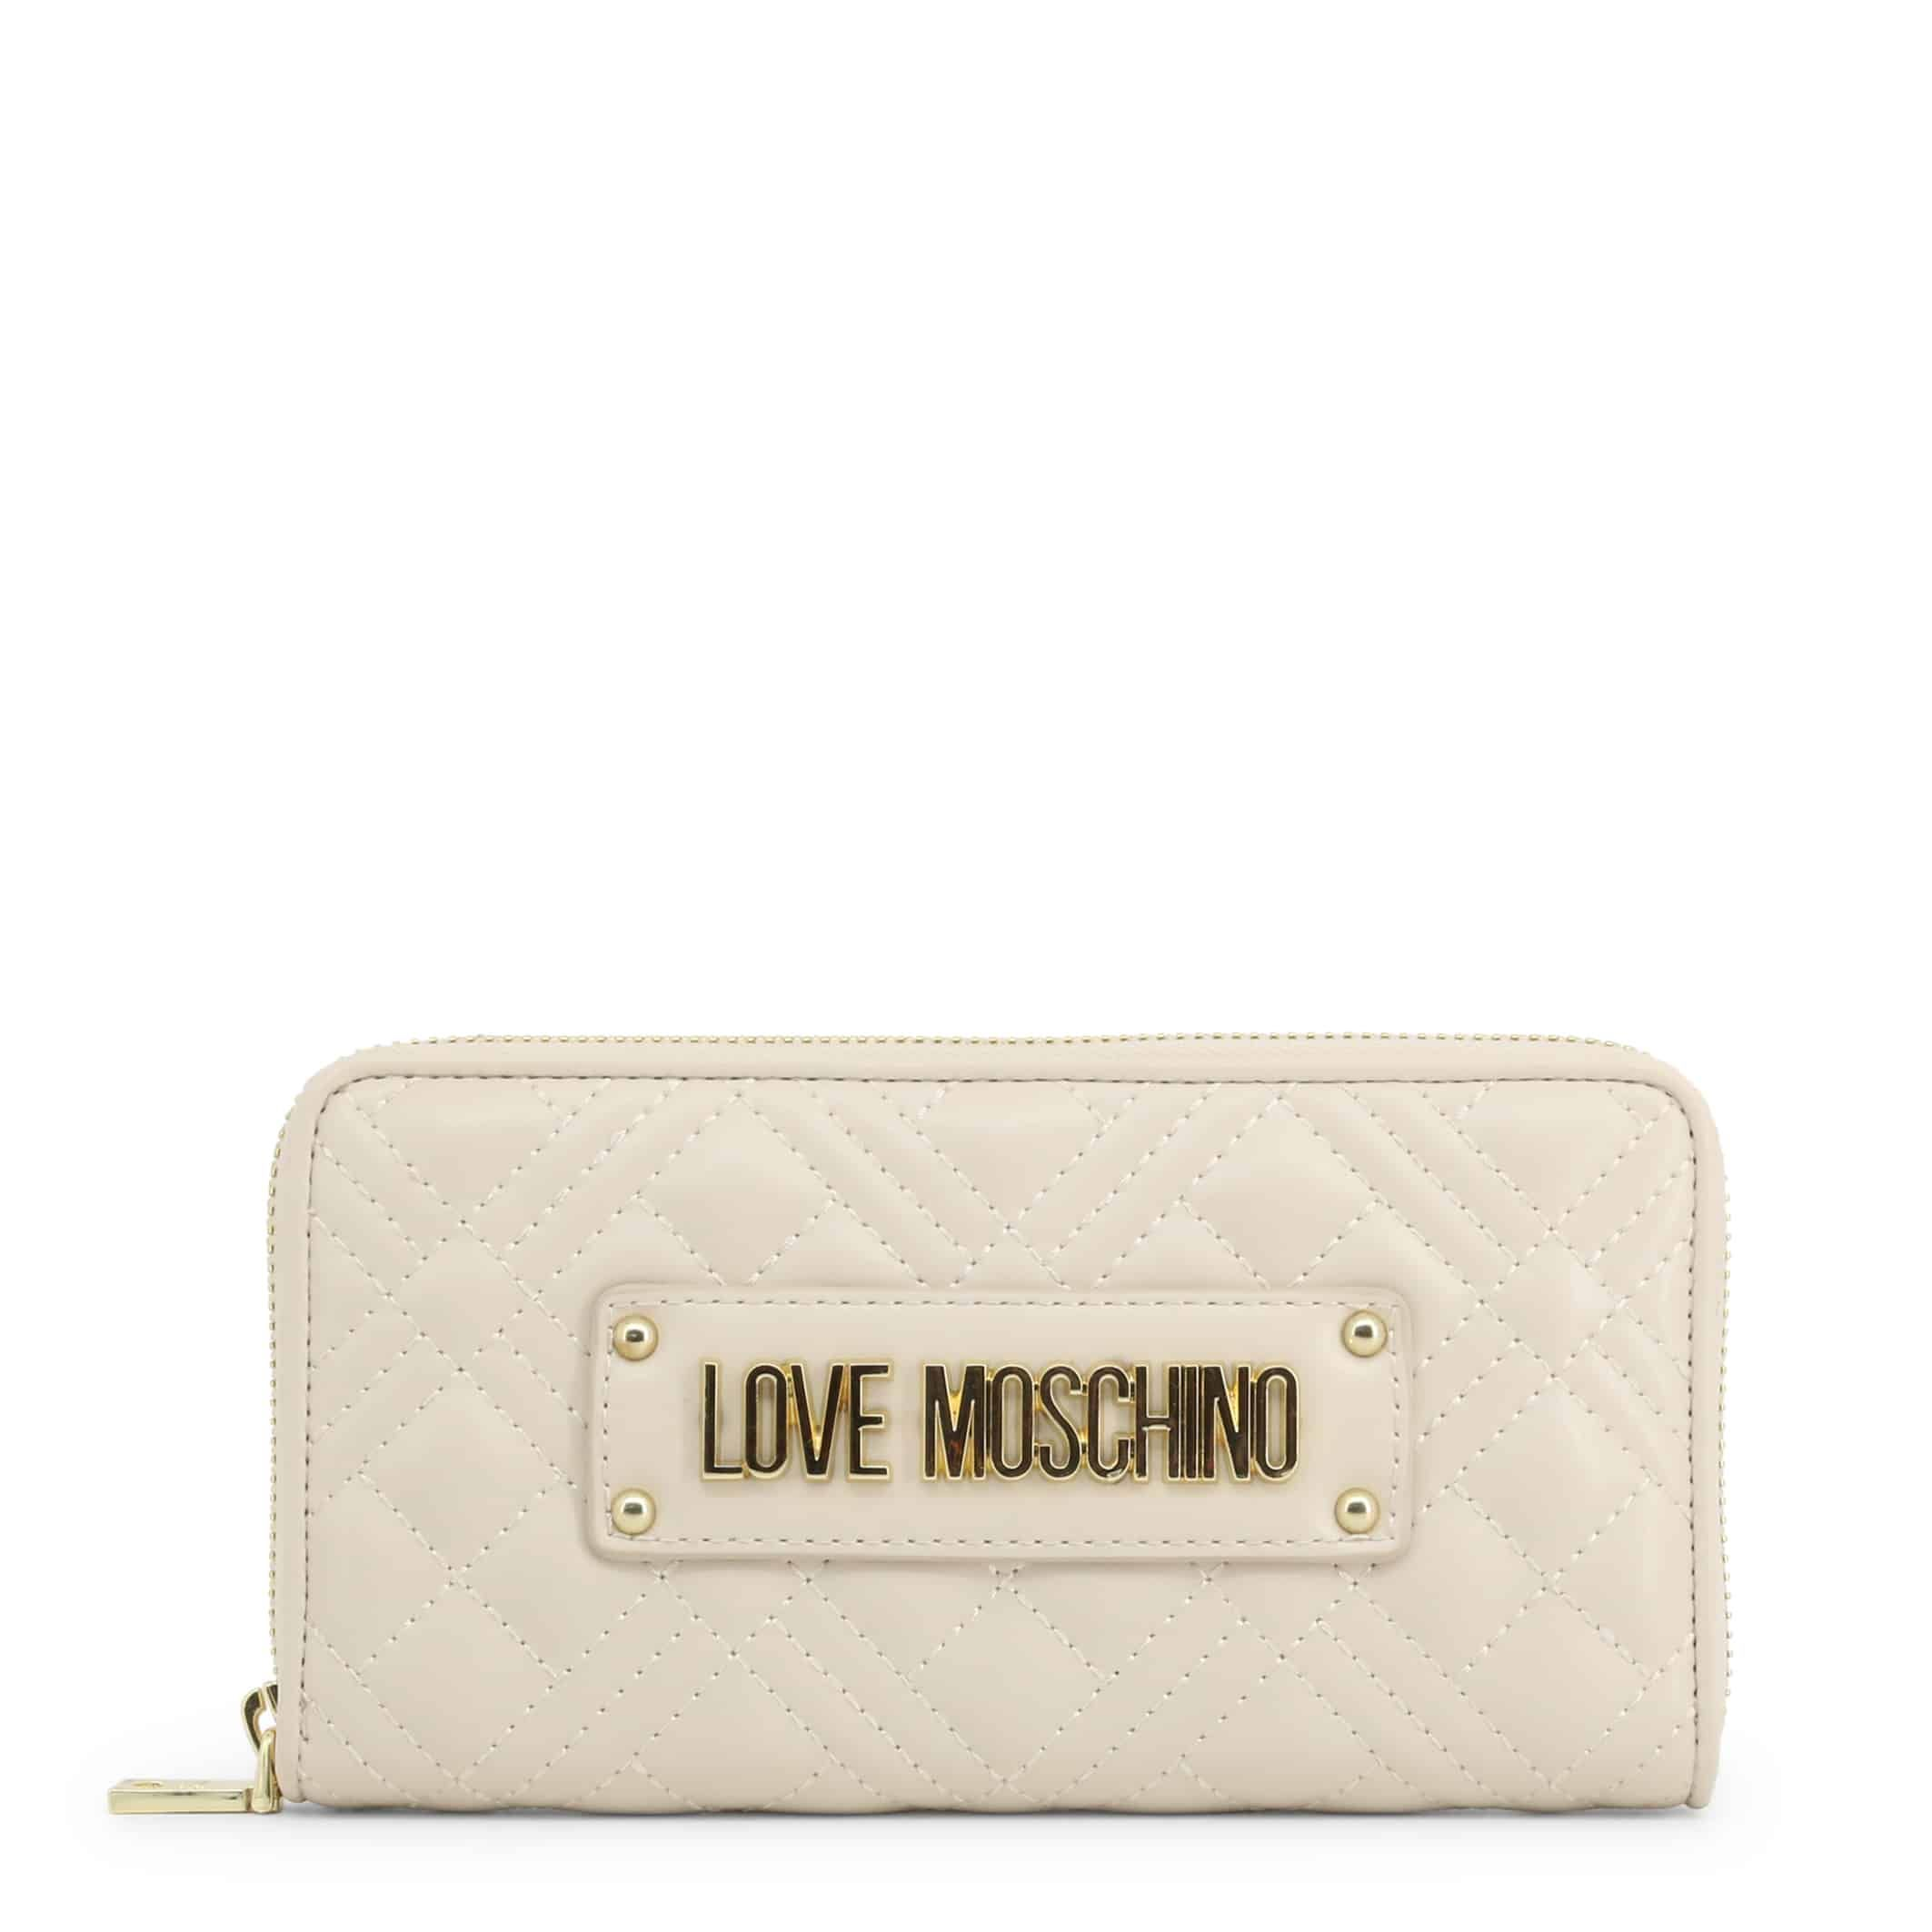 Portefeuilles Love Moschino – JC5600PP1ALA